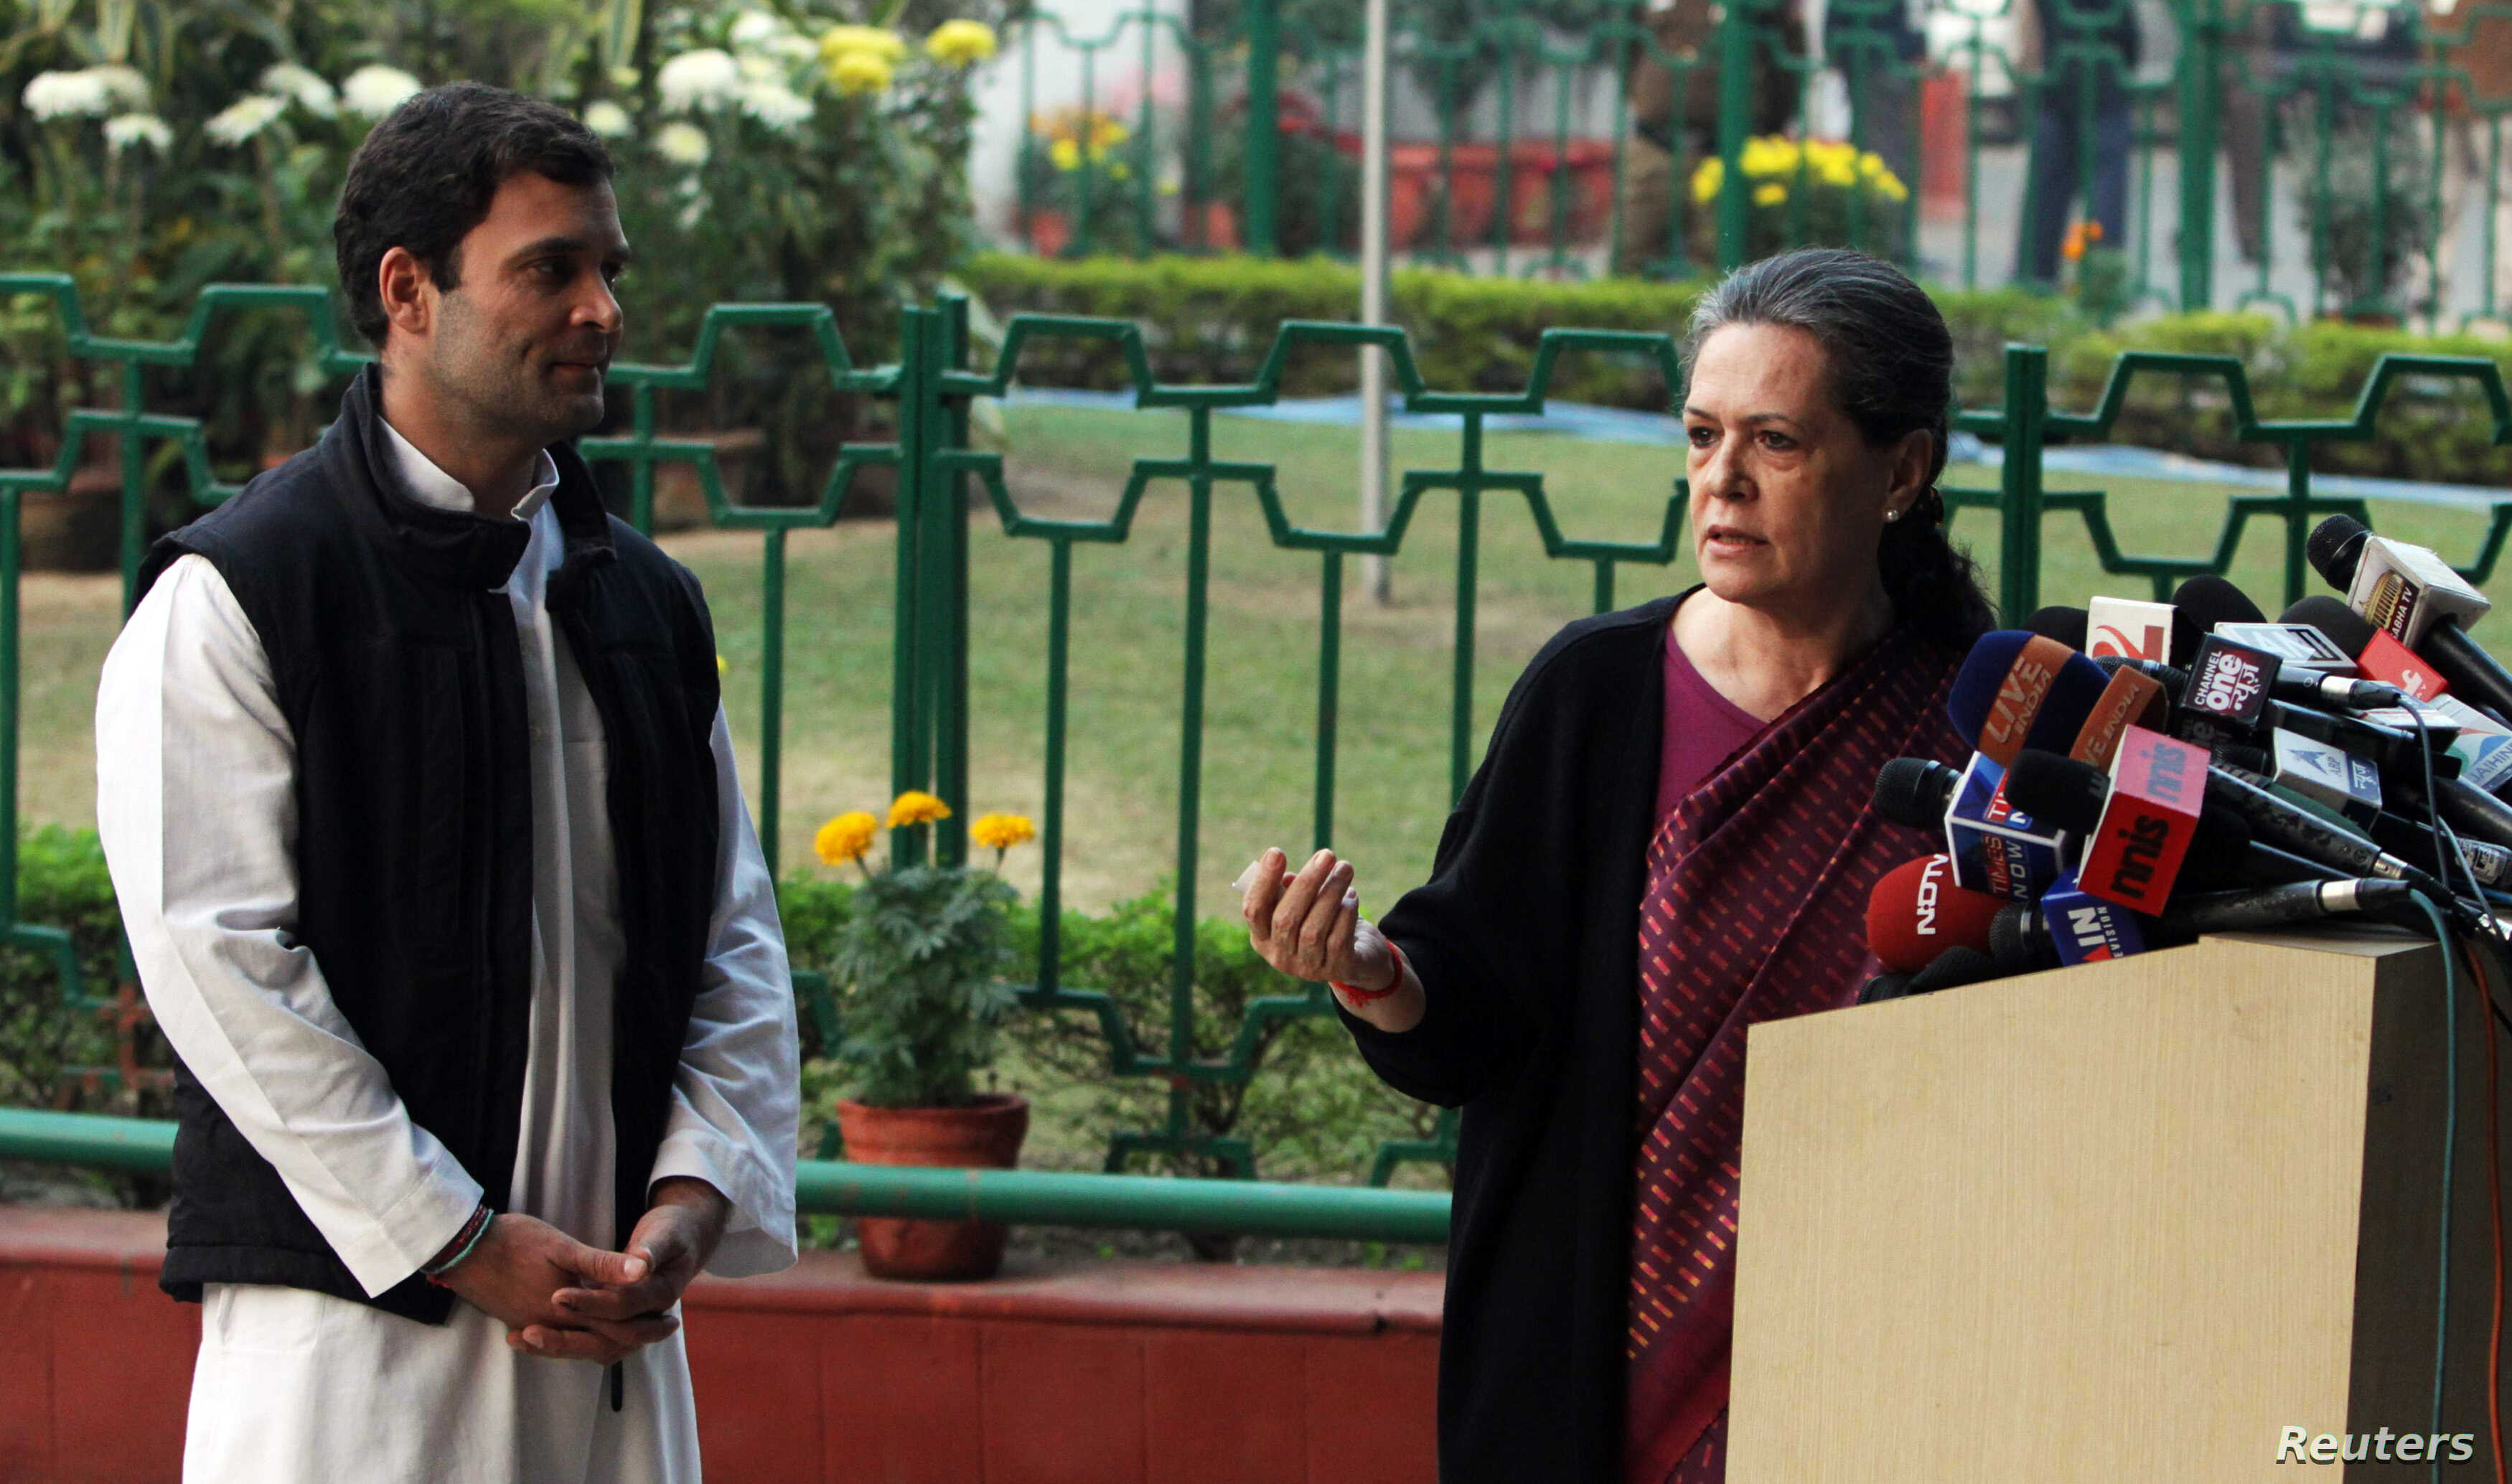 Chief of India's ruling Congress party Sonia Gandhi (R) speaks as her son, lawmaker Rahul Gandhi, watches during a news conference in New Delhi, Dec. 8, 2013.